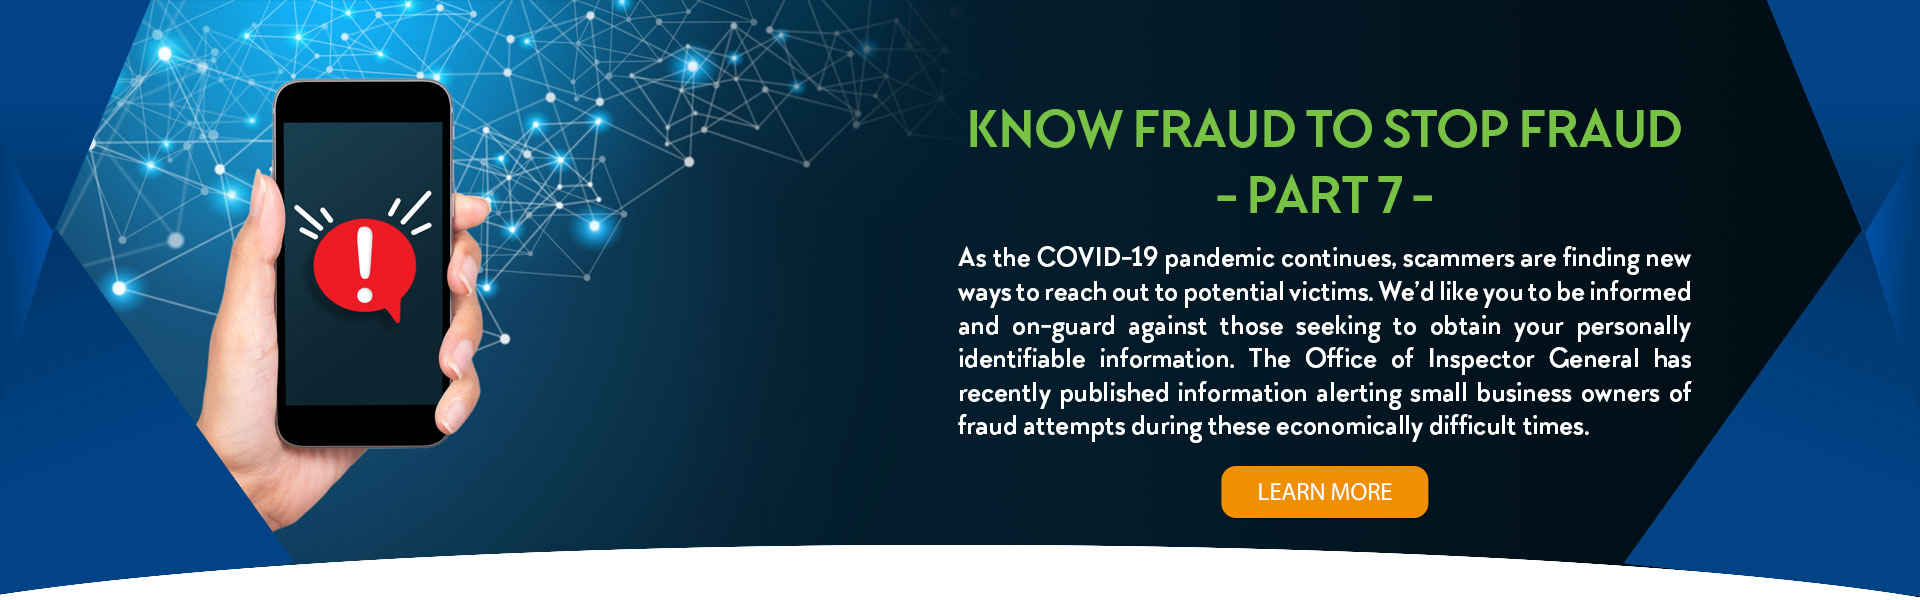 Blog - Know Fraud to Stop Fraud - Part 7